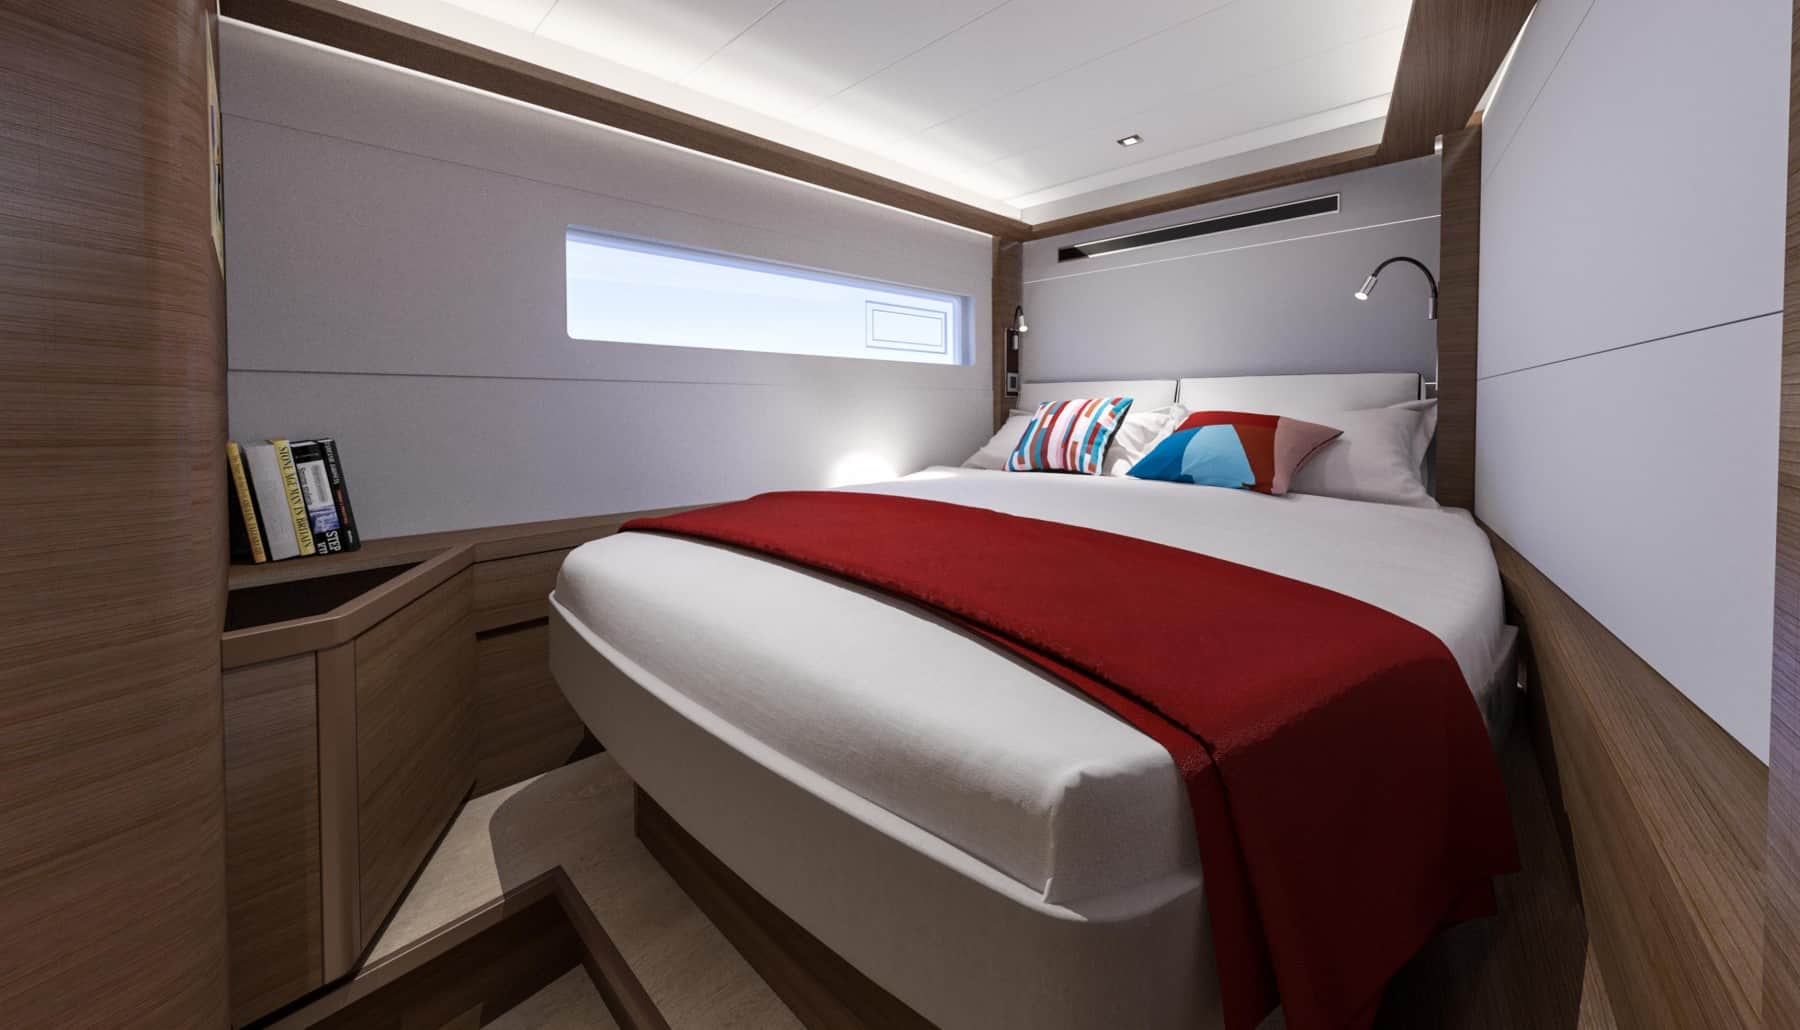 The interior design of the majestic owners cabin of a Lagoon 46 yacht